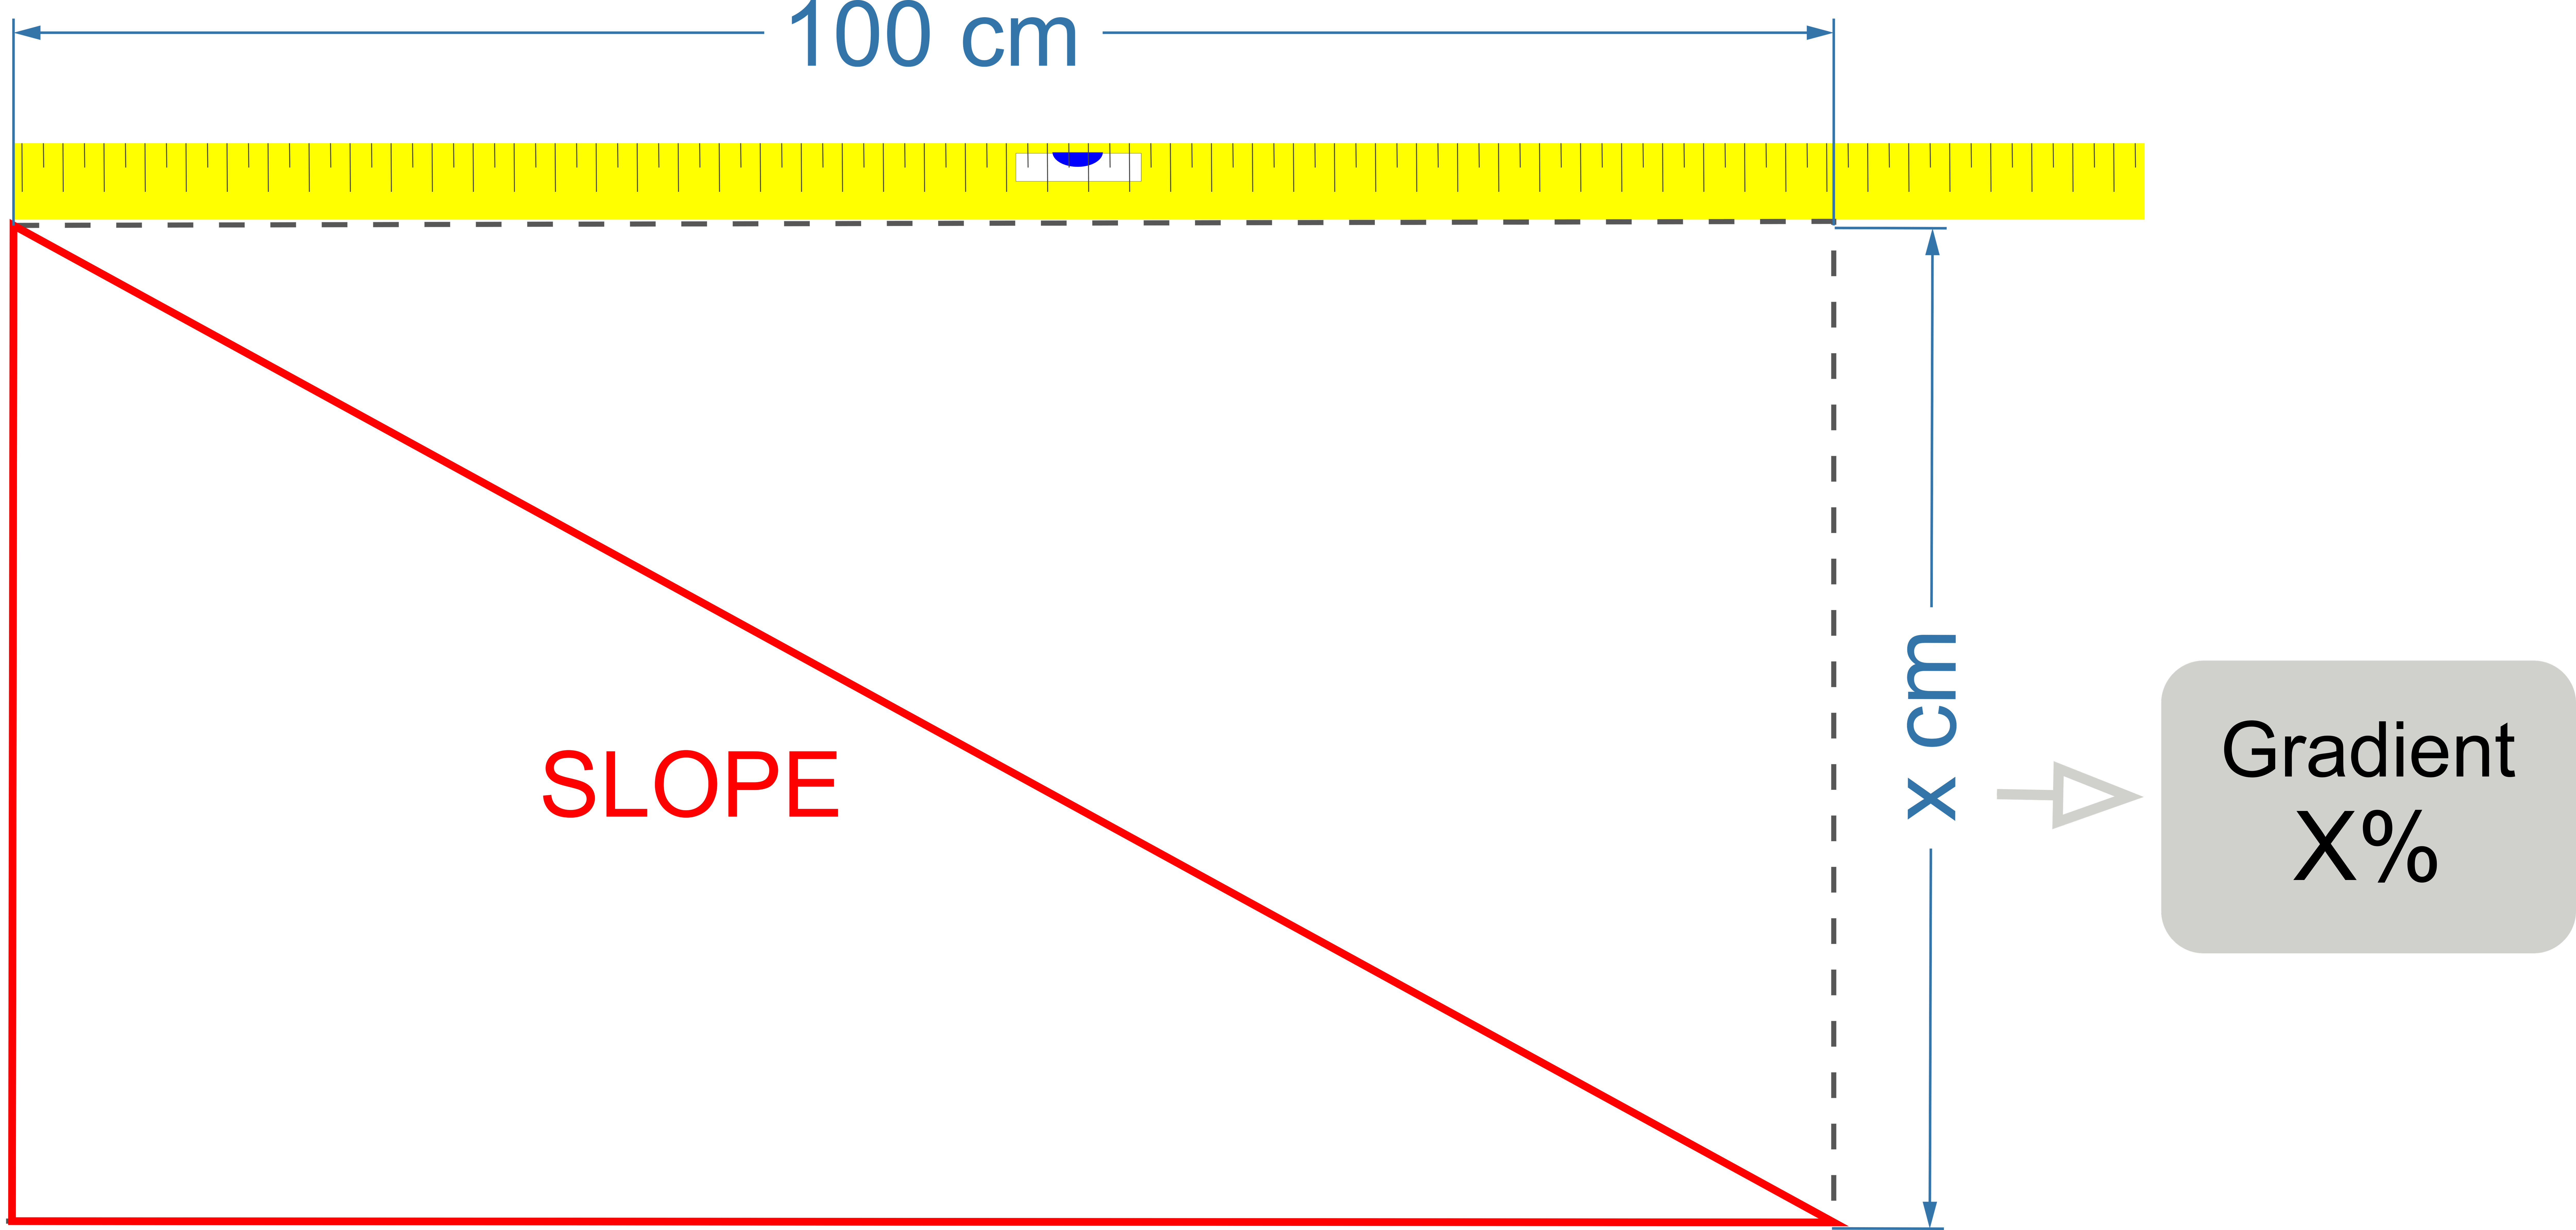 How to measure Slopes in gradient units